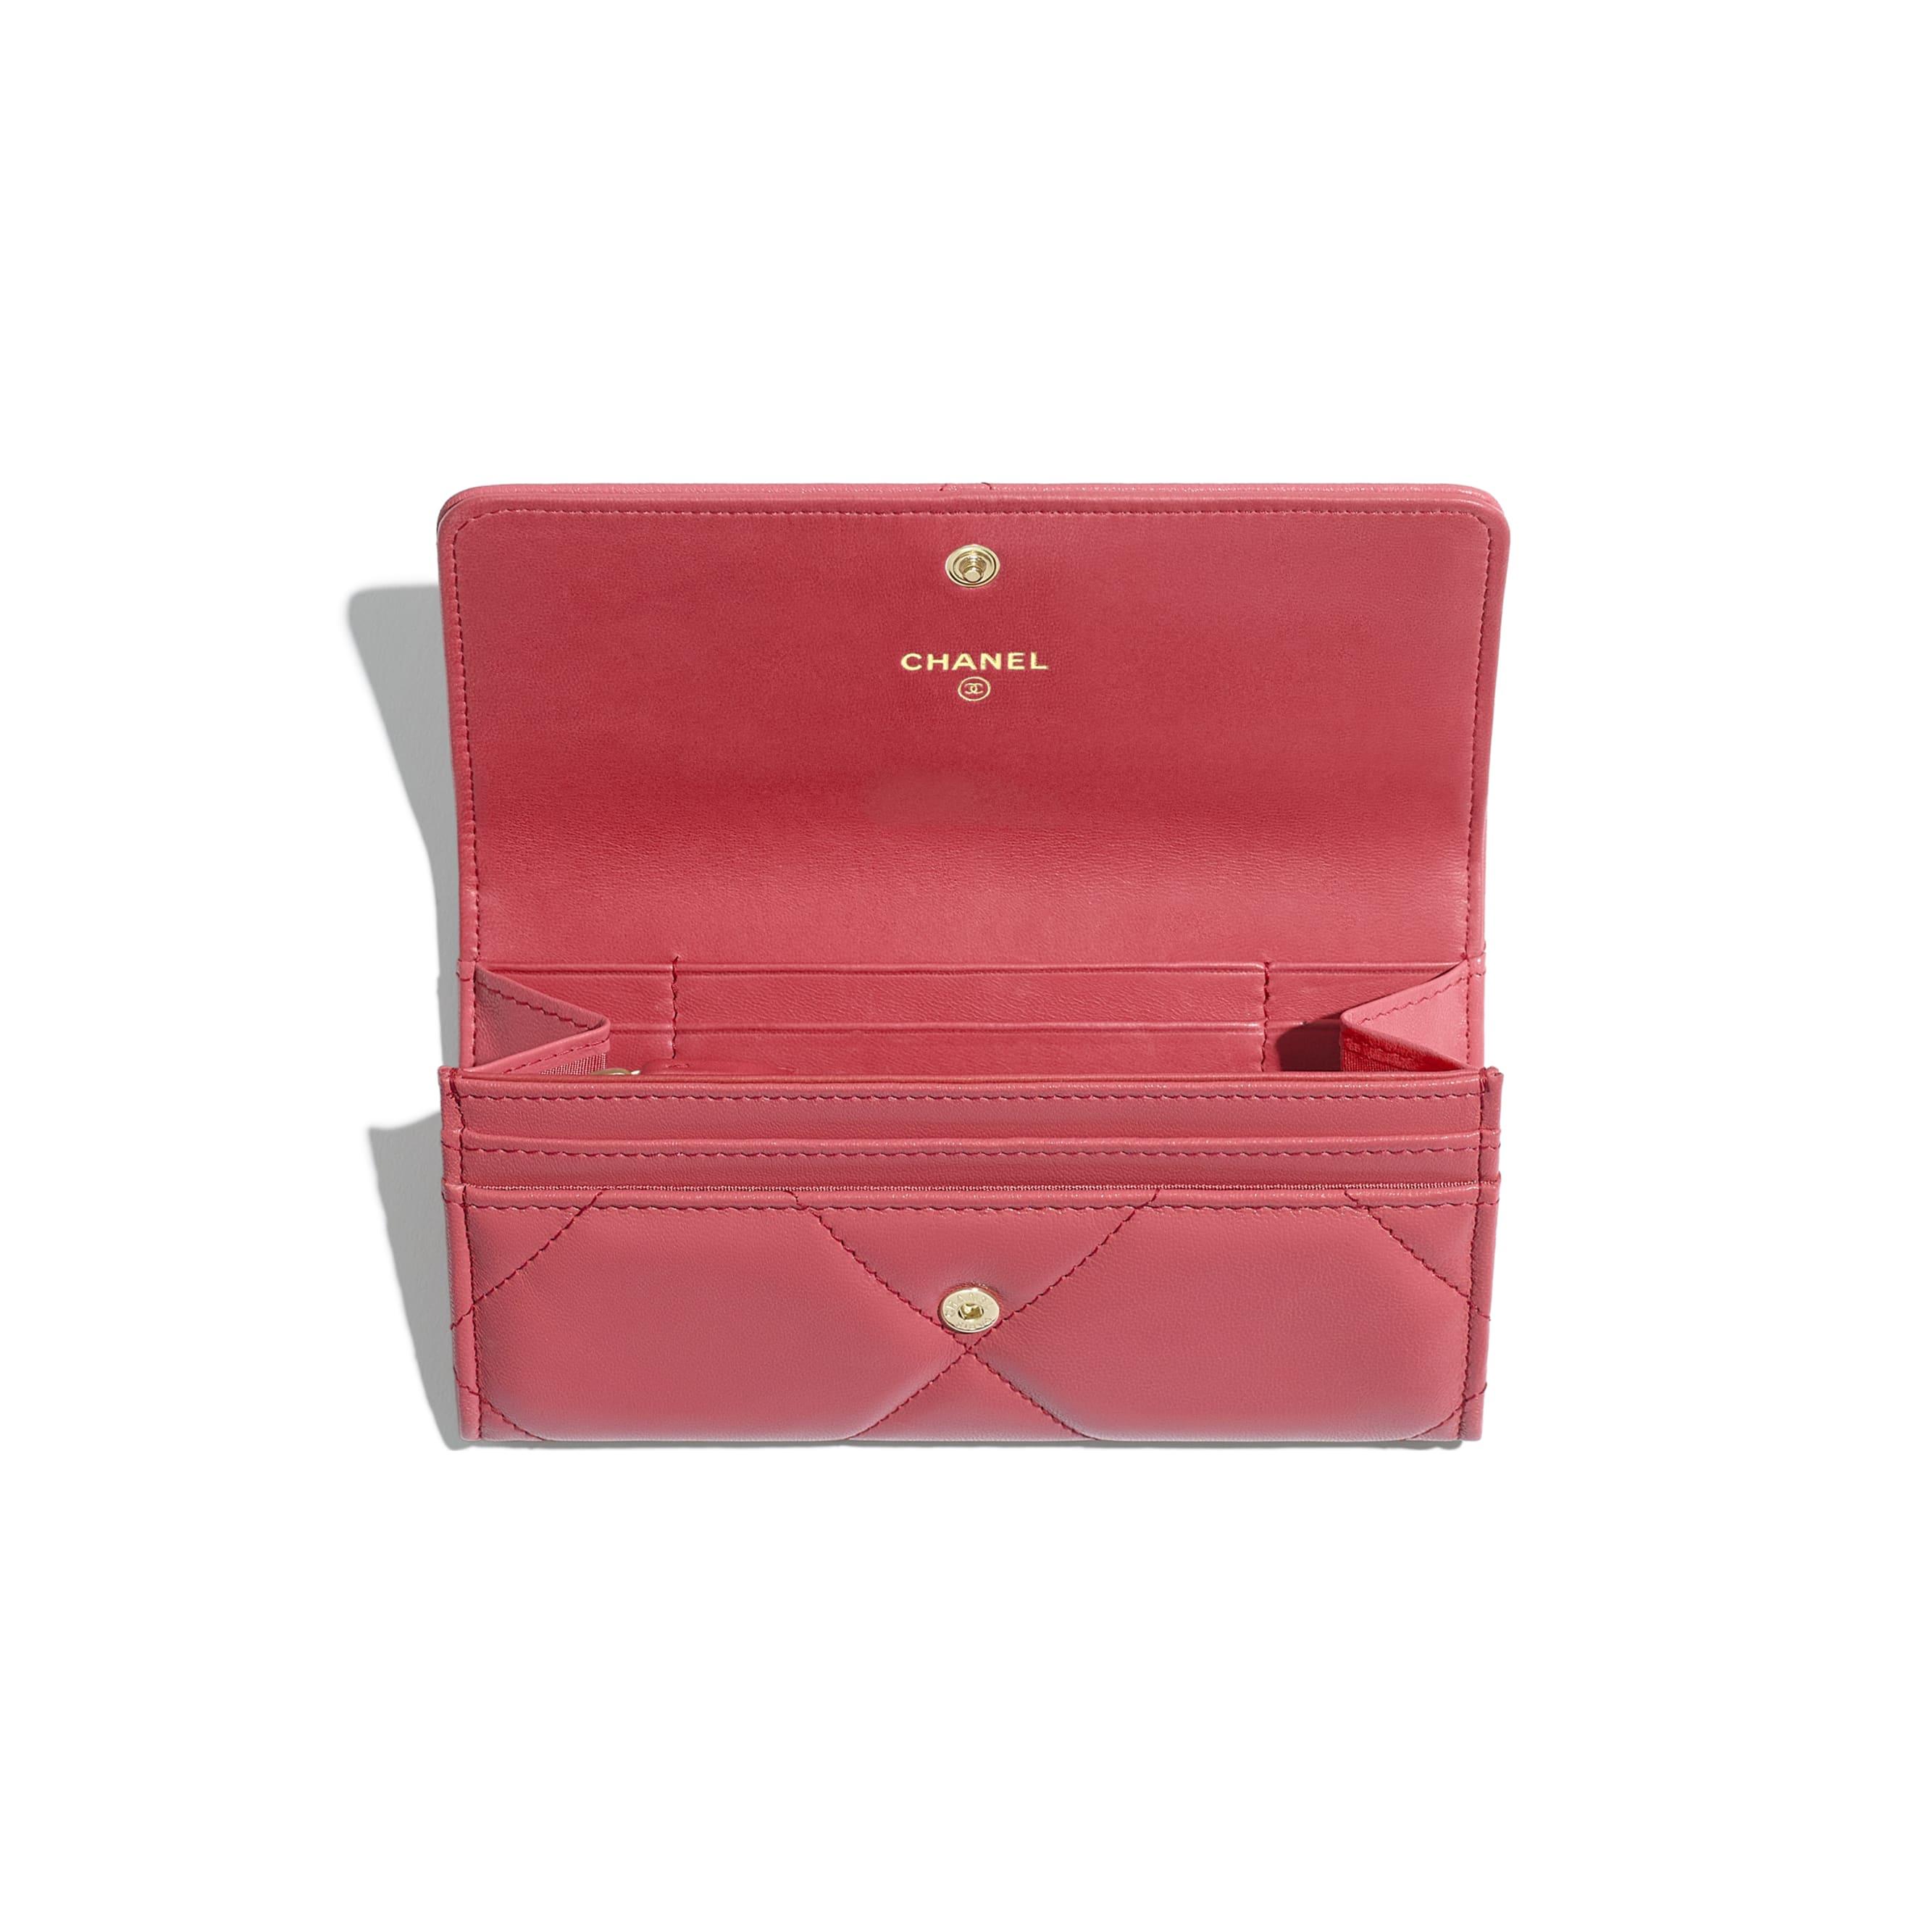 CHANEL 19 Flap Wallet - Pink - Lambskin, Gold-Tone, Silver-Tone & Ruthenium-Finish Metal - Other view - see standard sized version